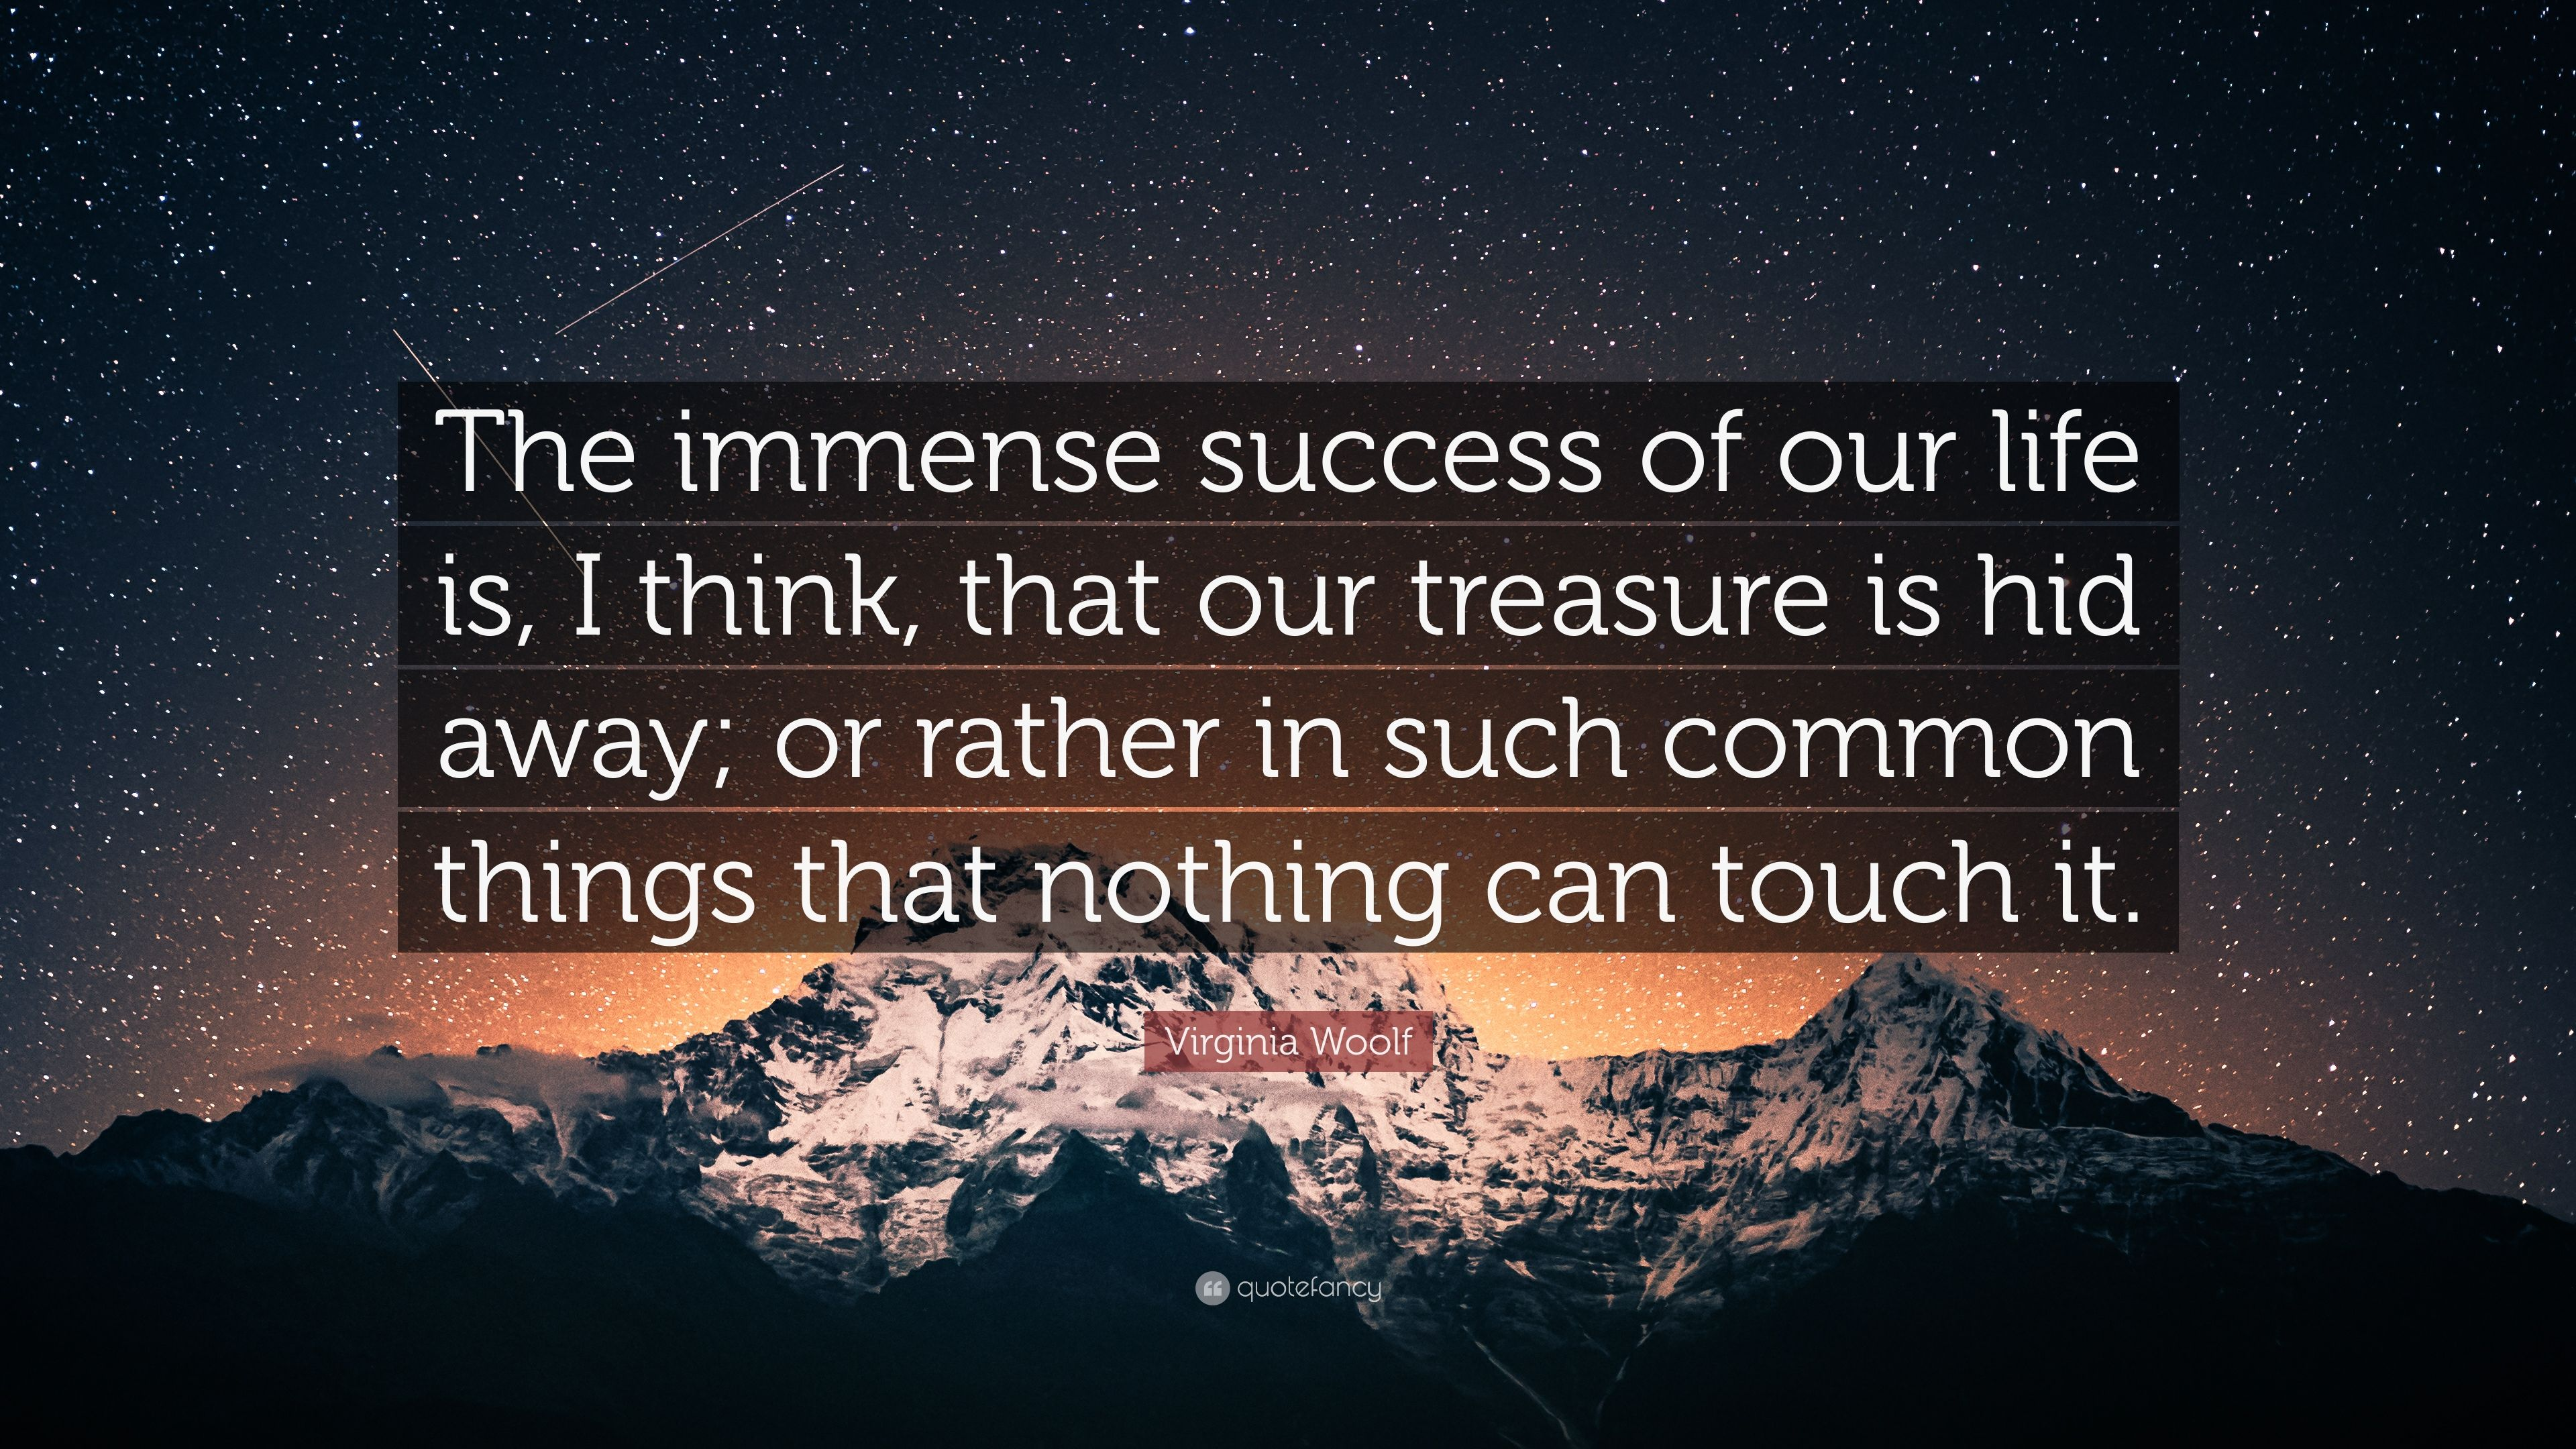 10 MORE inspirational writing quotes [In photos] - Abstract